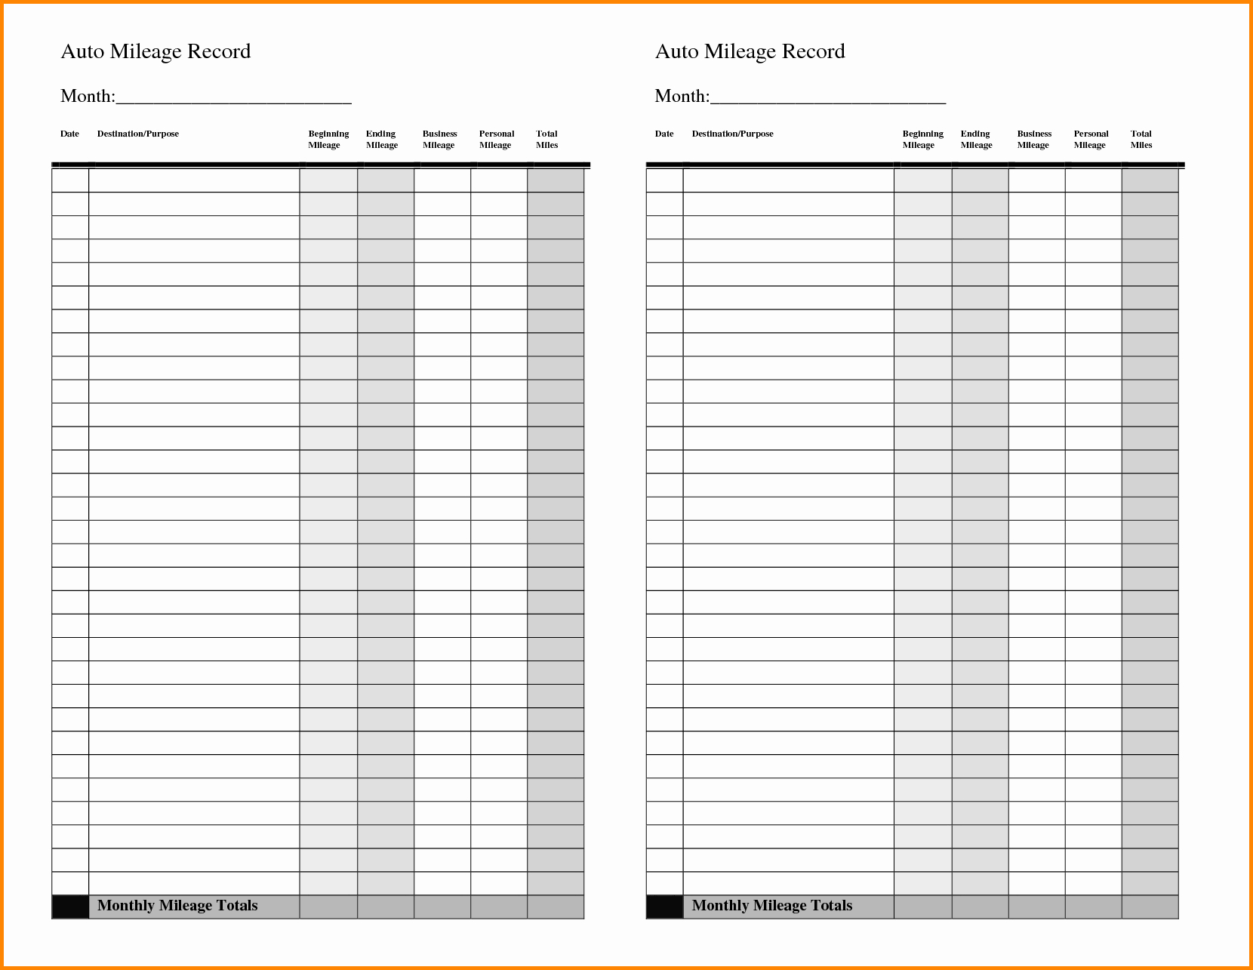 Mileage Spreadsheet In Gas Mileage Spreadsheet Of Business Mileage Claim Form Template And